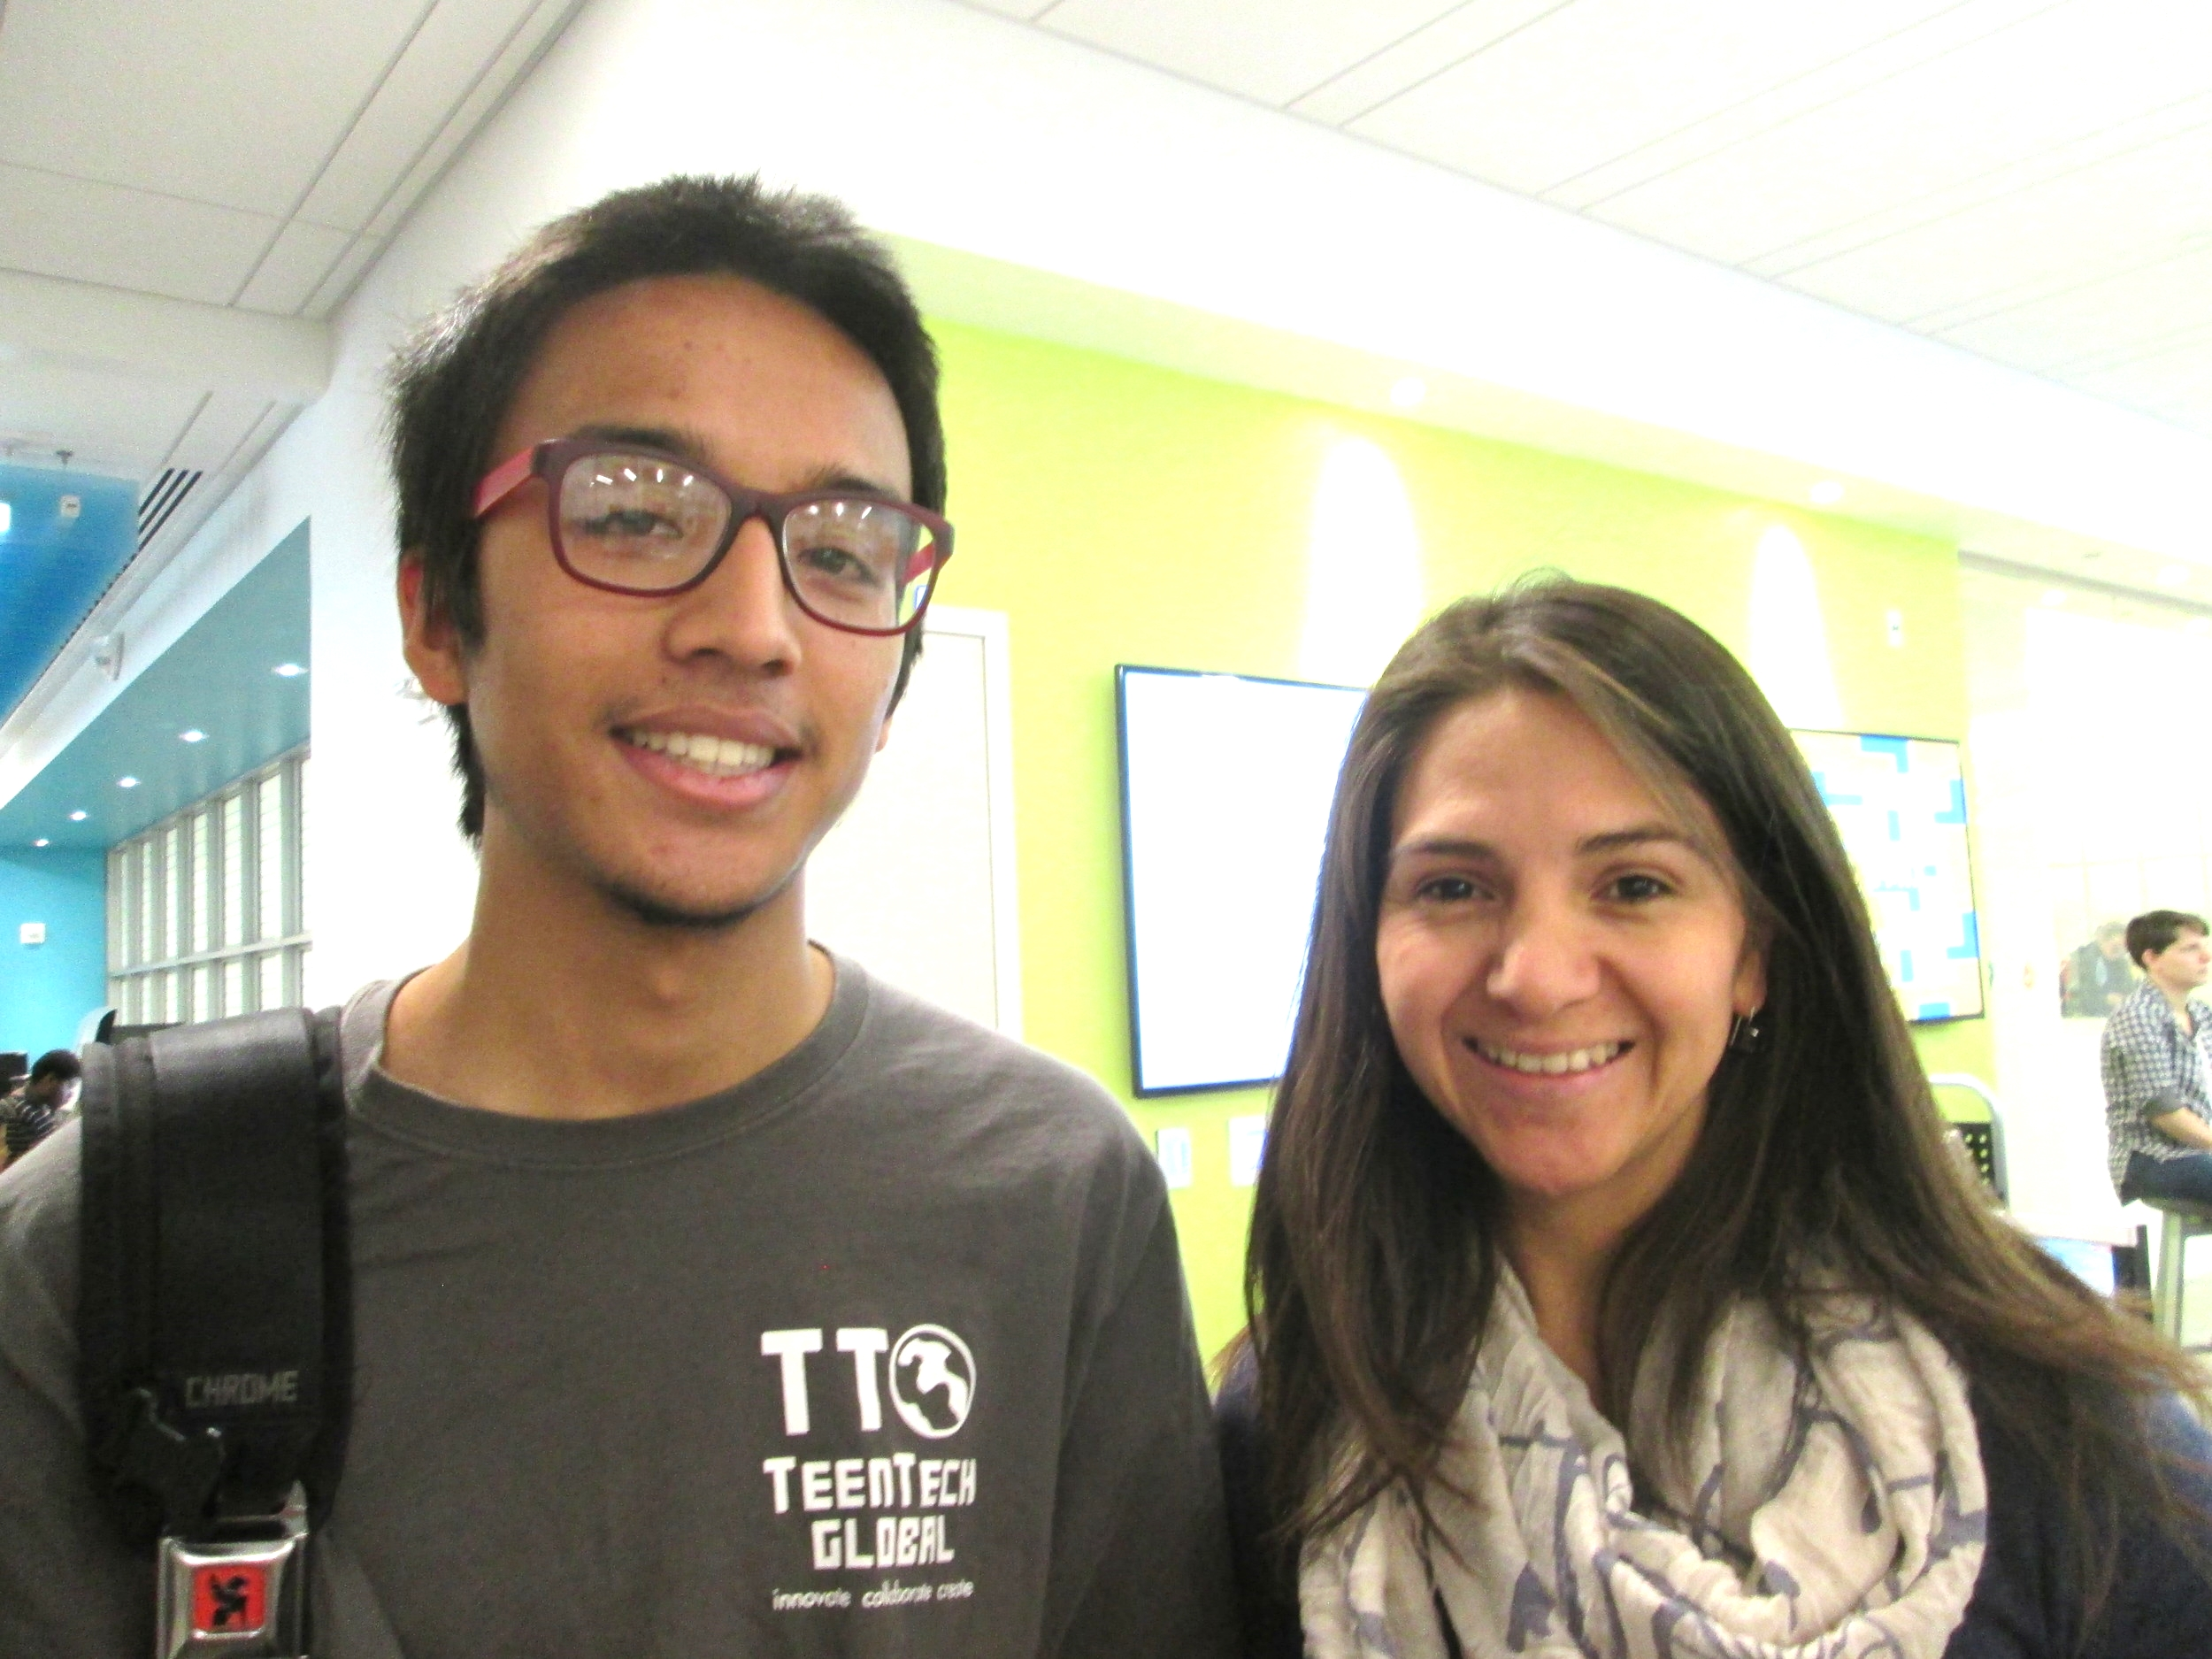 TeenTechSF Founder & Global Chair, Marc Robert Wong, with UC Berkeley film-maker making a documentary about hackathons